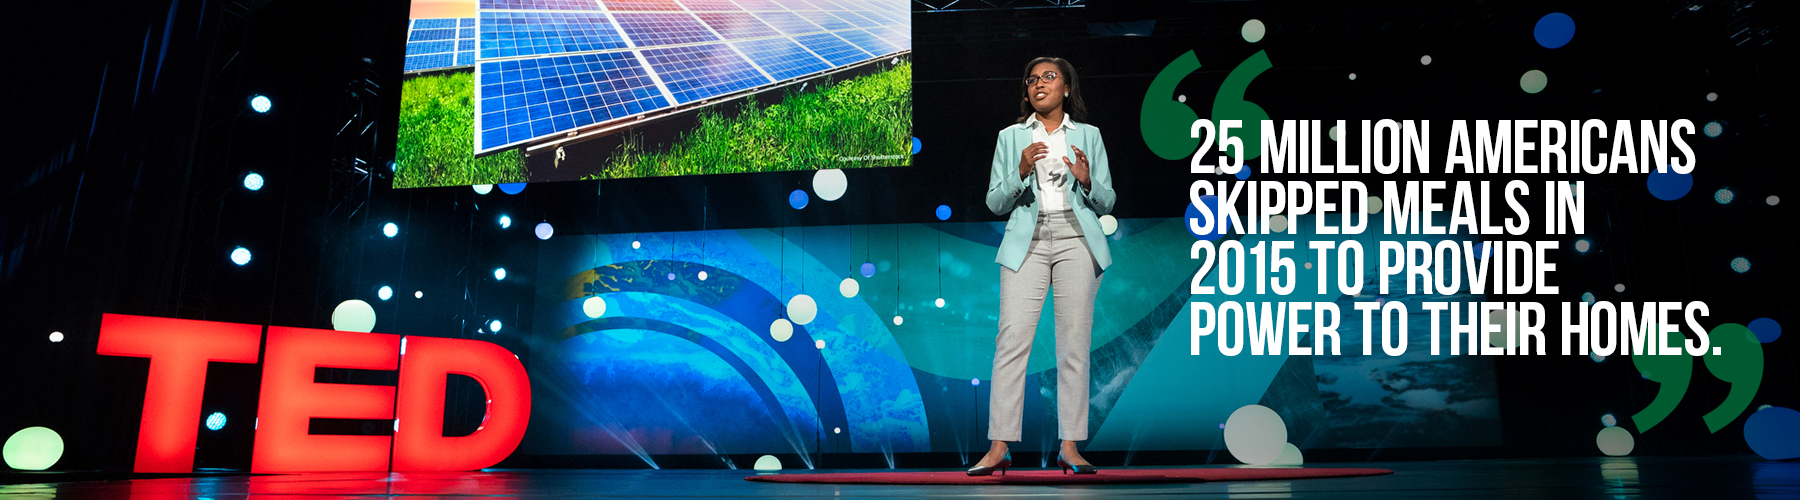 DeAndrea Salvador speaks during Fellows Session at TED2018 - The Age of Amazement, April 10 - 14, 2018, Vancouver, BC, Canada. Photo: Ryan Lash / TED